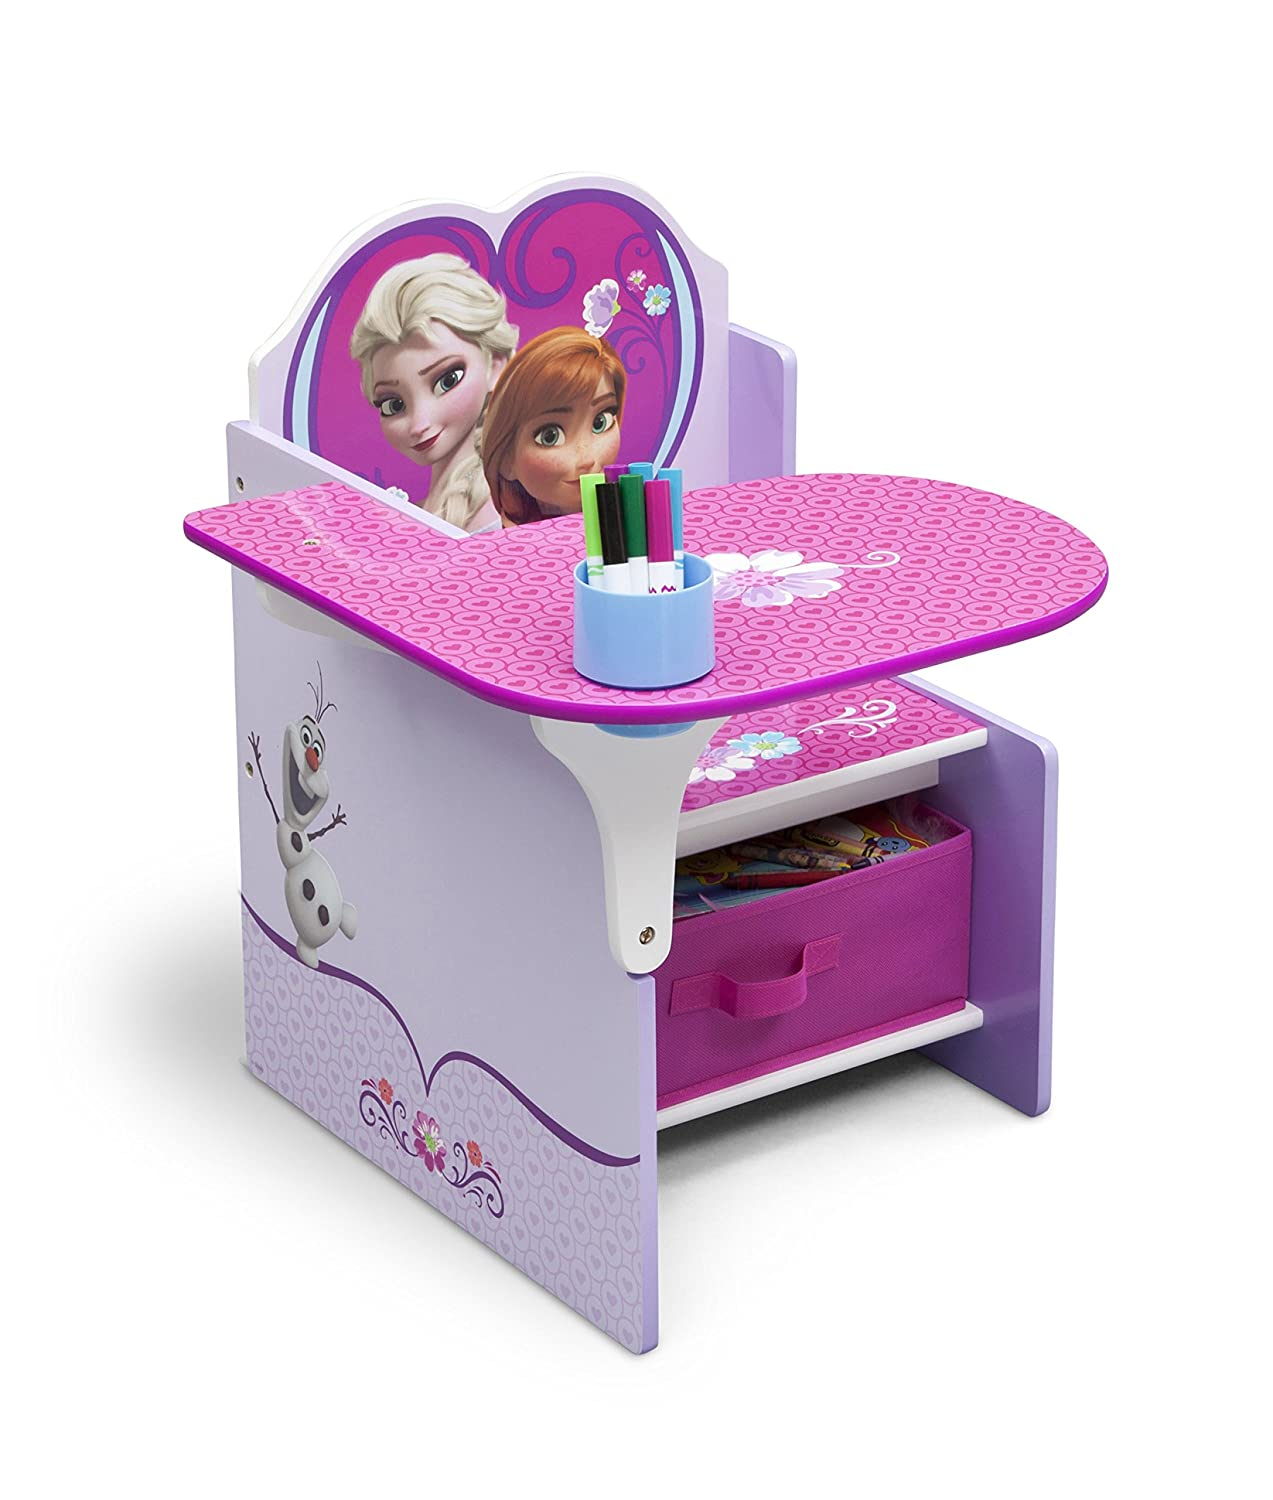 Amazon.com: Delta Children Chair Desk With Storage Bin, Disney Frozen: Baby